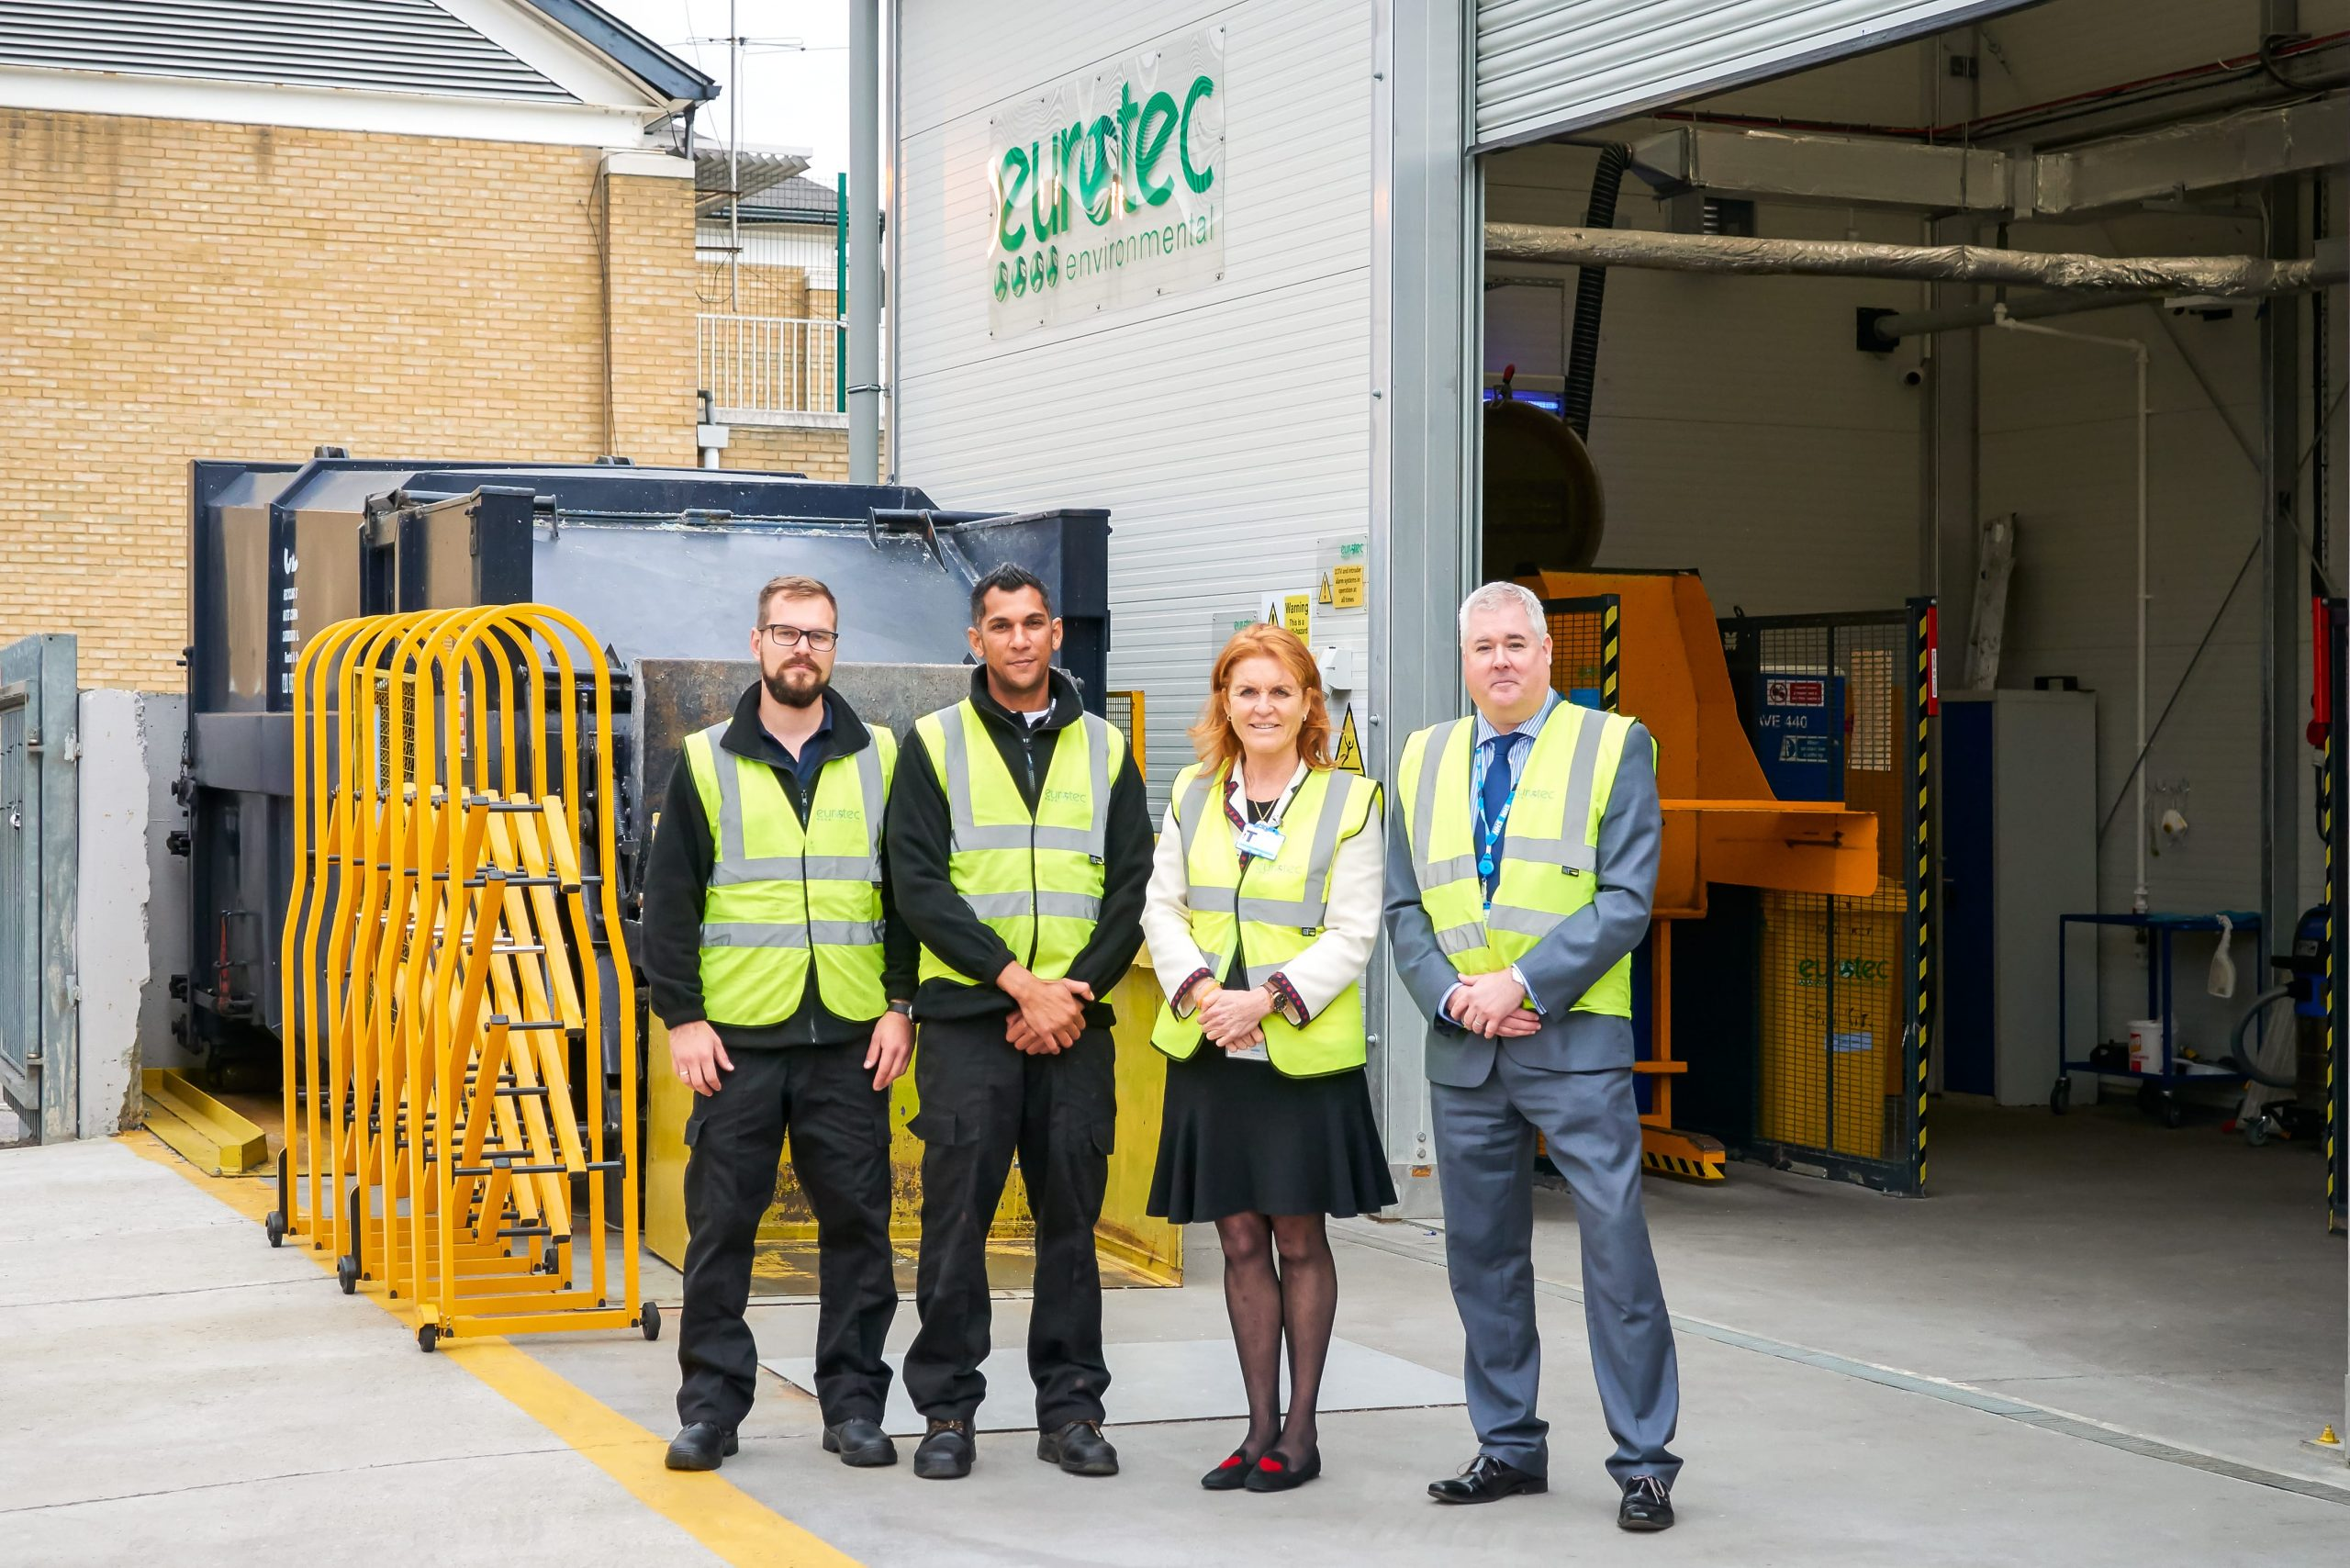 THE DUCHESS OF YORK ENJOYS A DAY WITH EUROTEC ENVIRONMENTAL